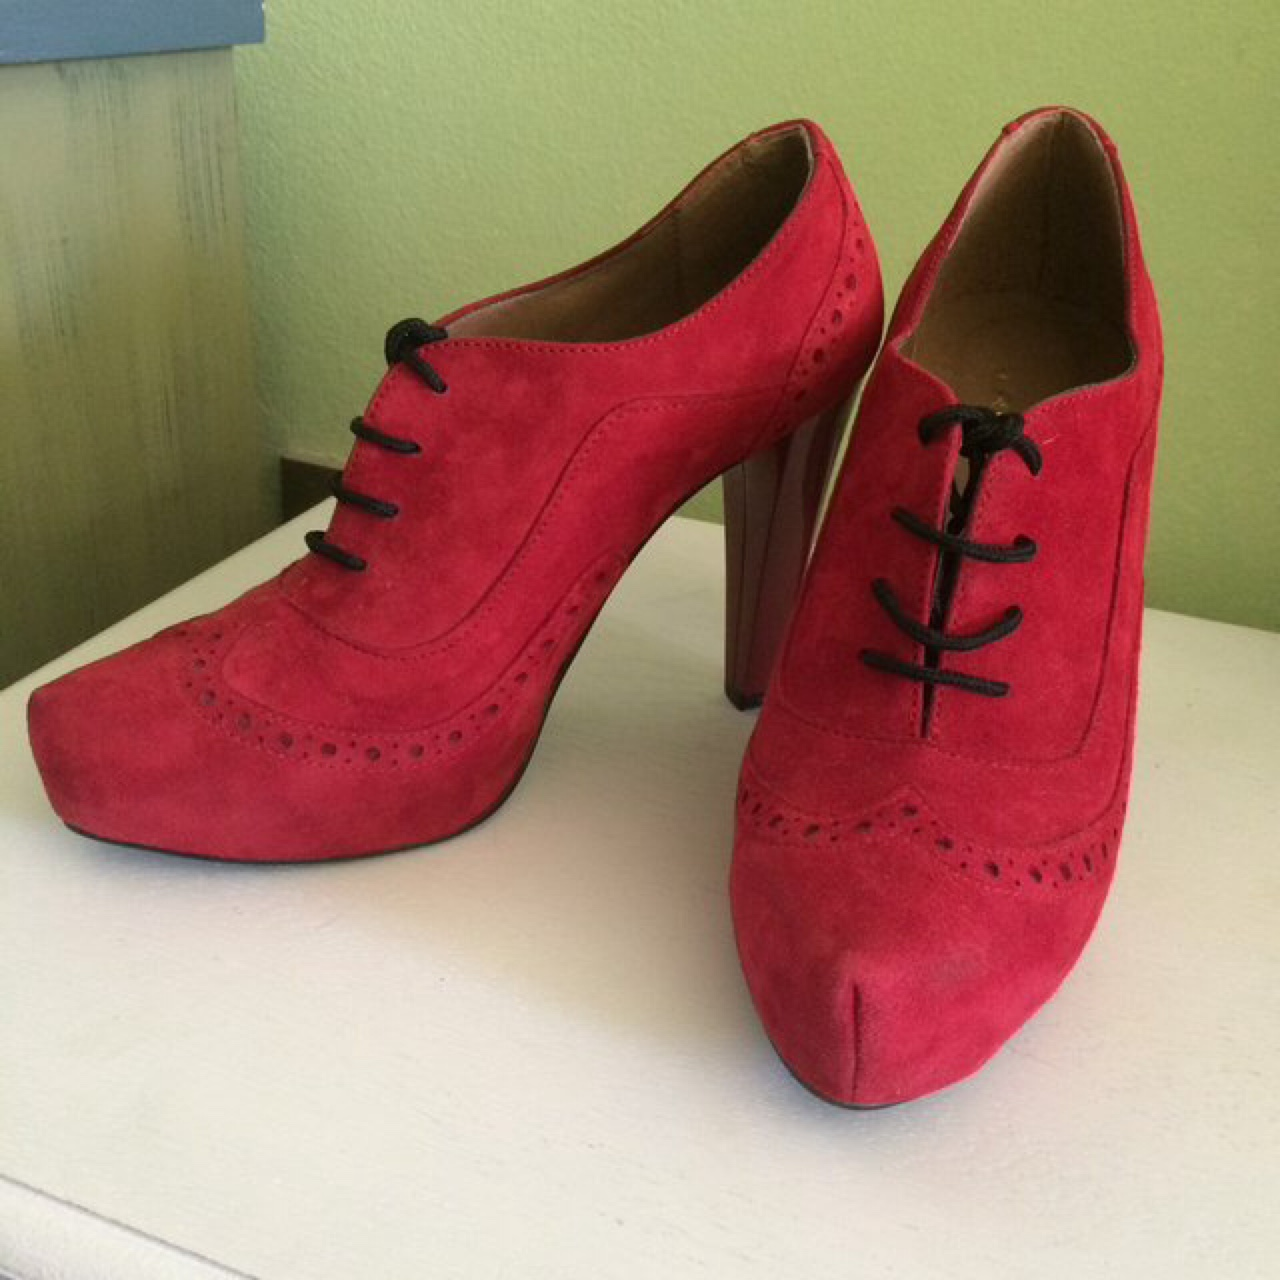 separation shoes 77c67 b966c Listed on Depop by cuoro